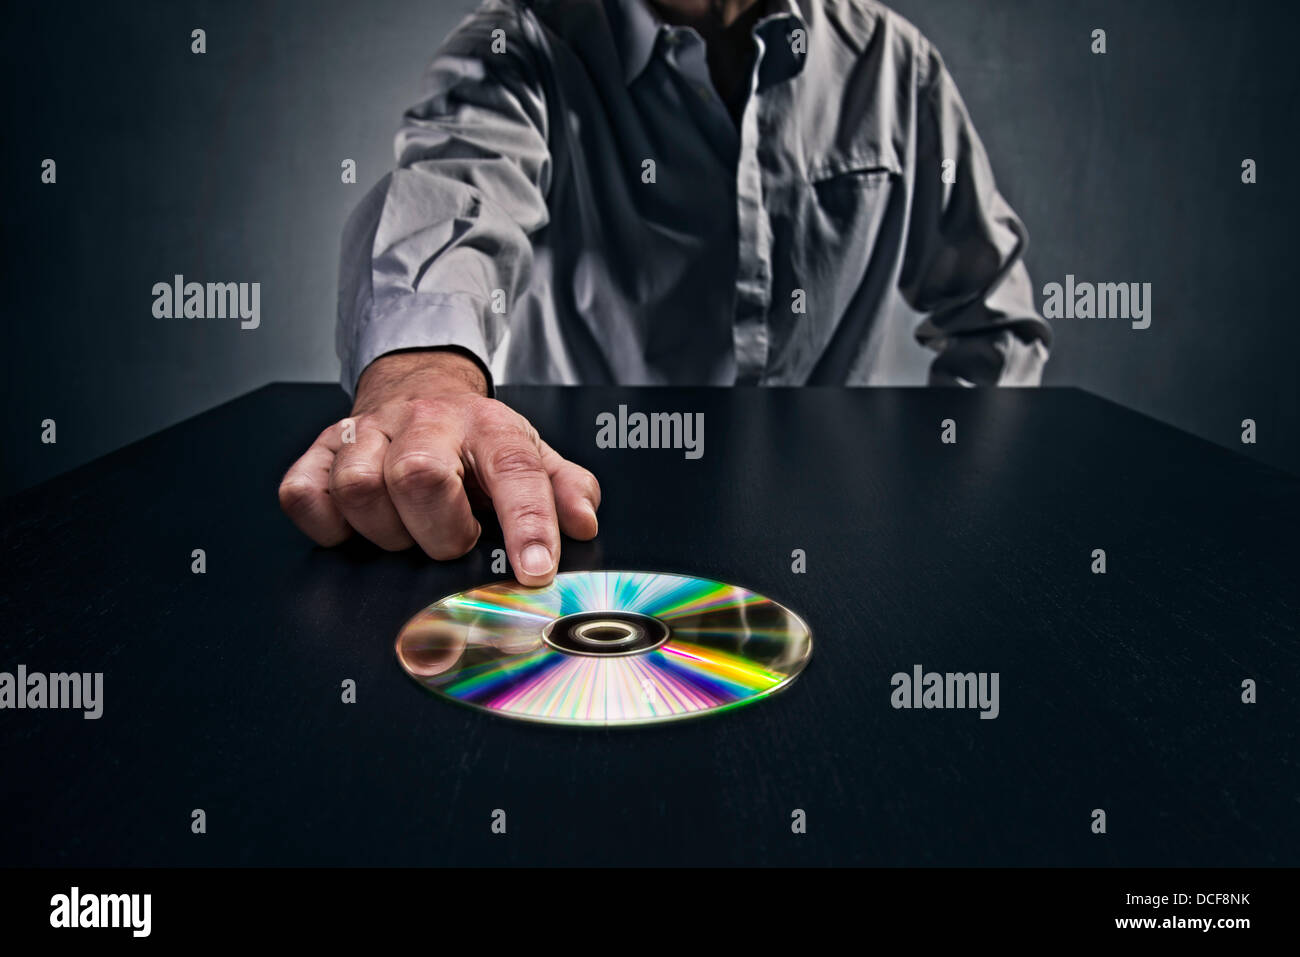 Man pushing a CD with data on a table, symbolizing the passing of secret data. - Stock Image